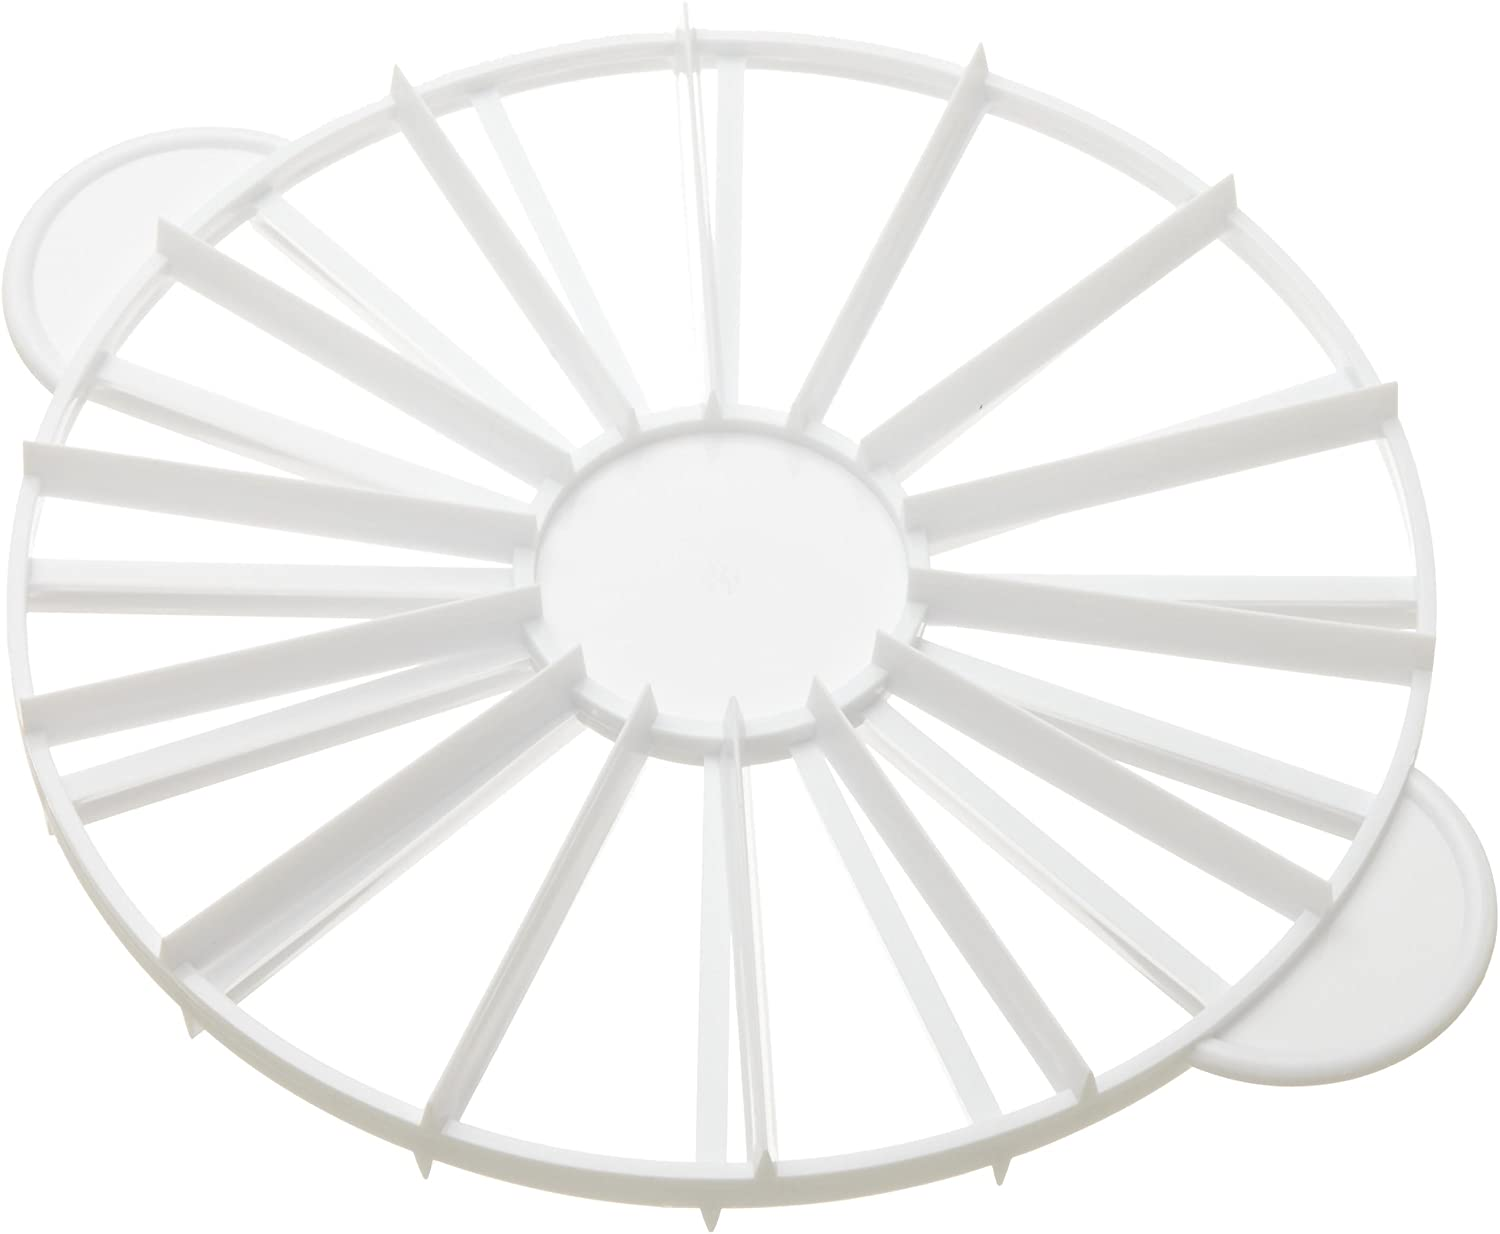 Ateco 1328 Cake Portion Marker, 14 or 16 Slices, Works for Cakes Up To 16-Inches Diameter